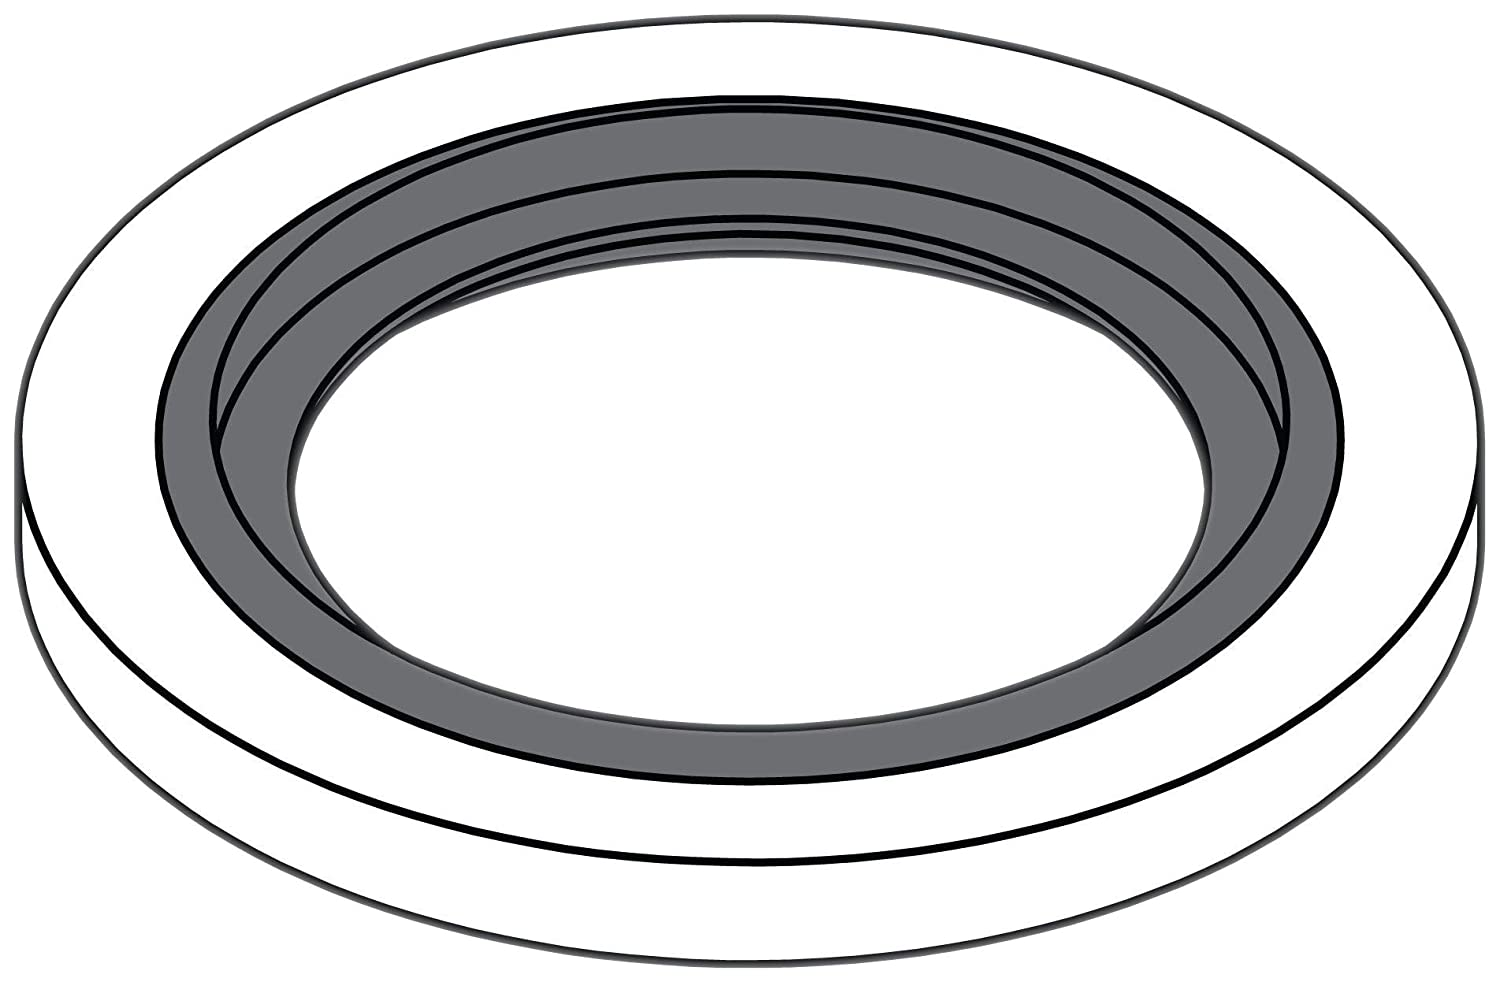 Tompkins Industries DS-MM-42 Bonded Seal for Metric Parallel Thread Steel Nominal Size 42